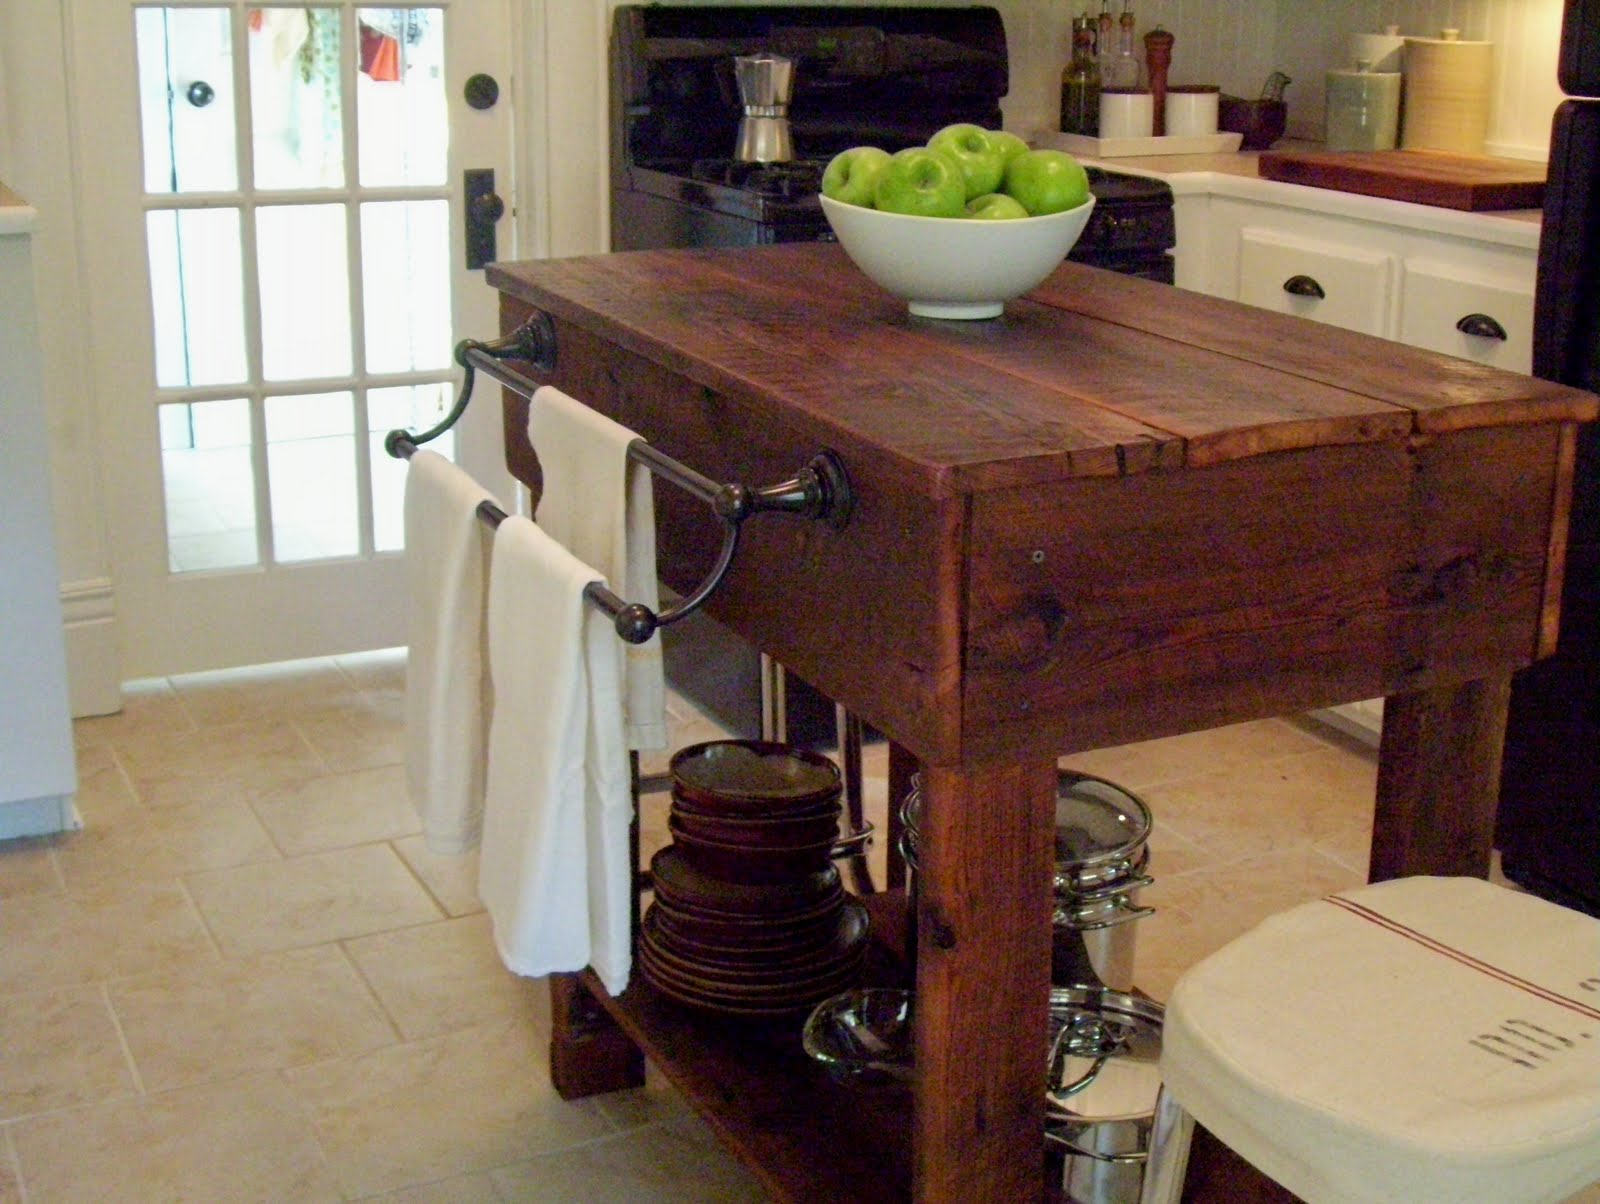 Remarkable Build a Rustic Kitchen Island 1600 x 1204 · 202 kB · jpeg